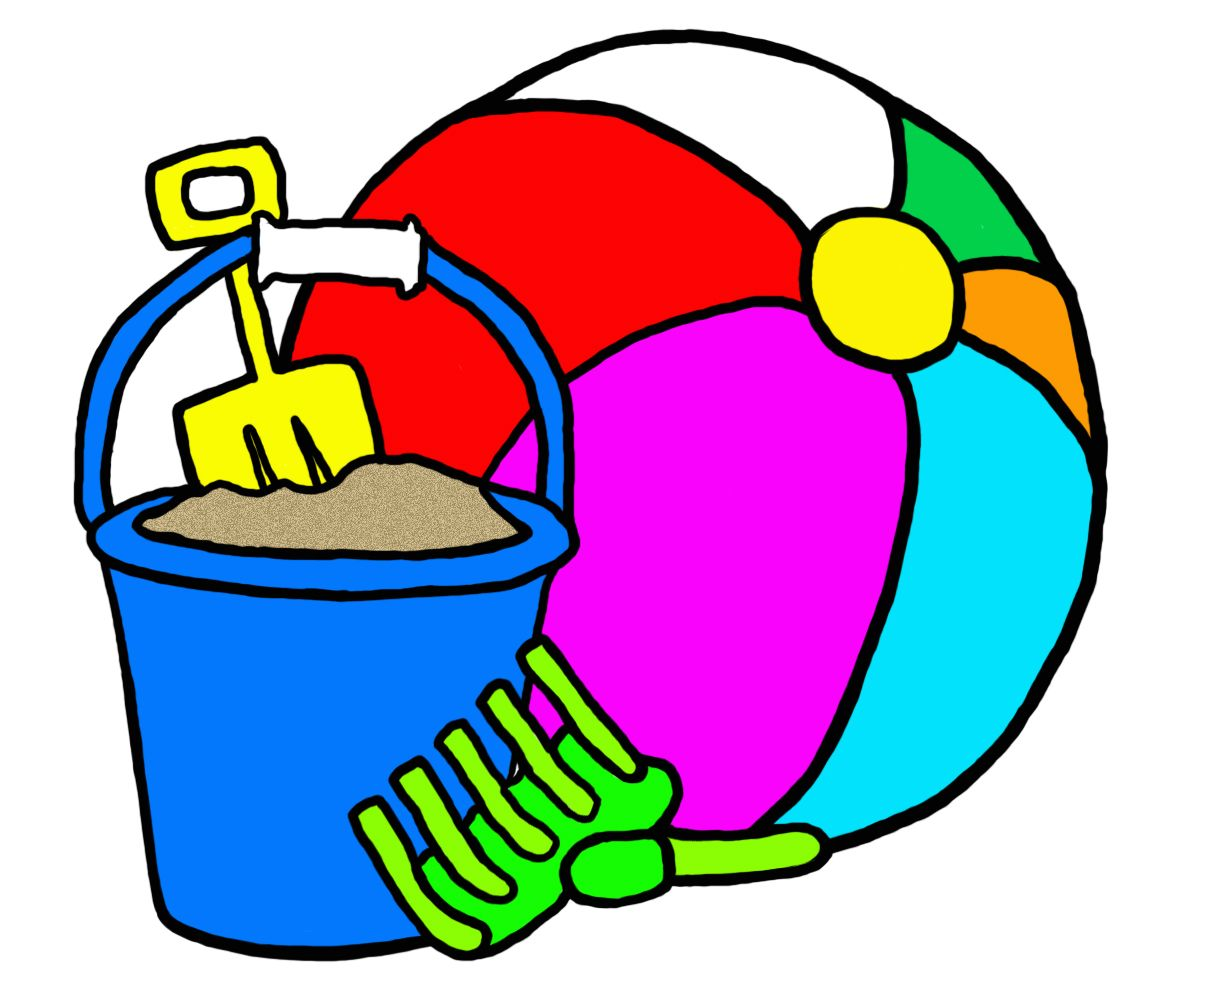 Bucket clipart summer. August google search decorations